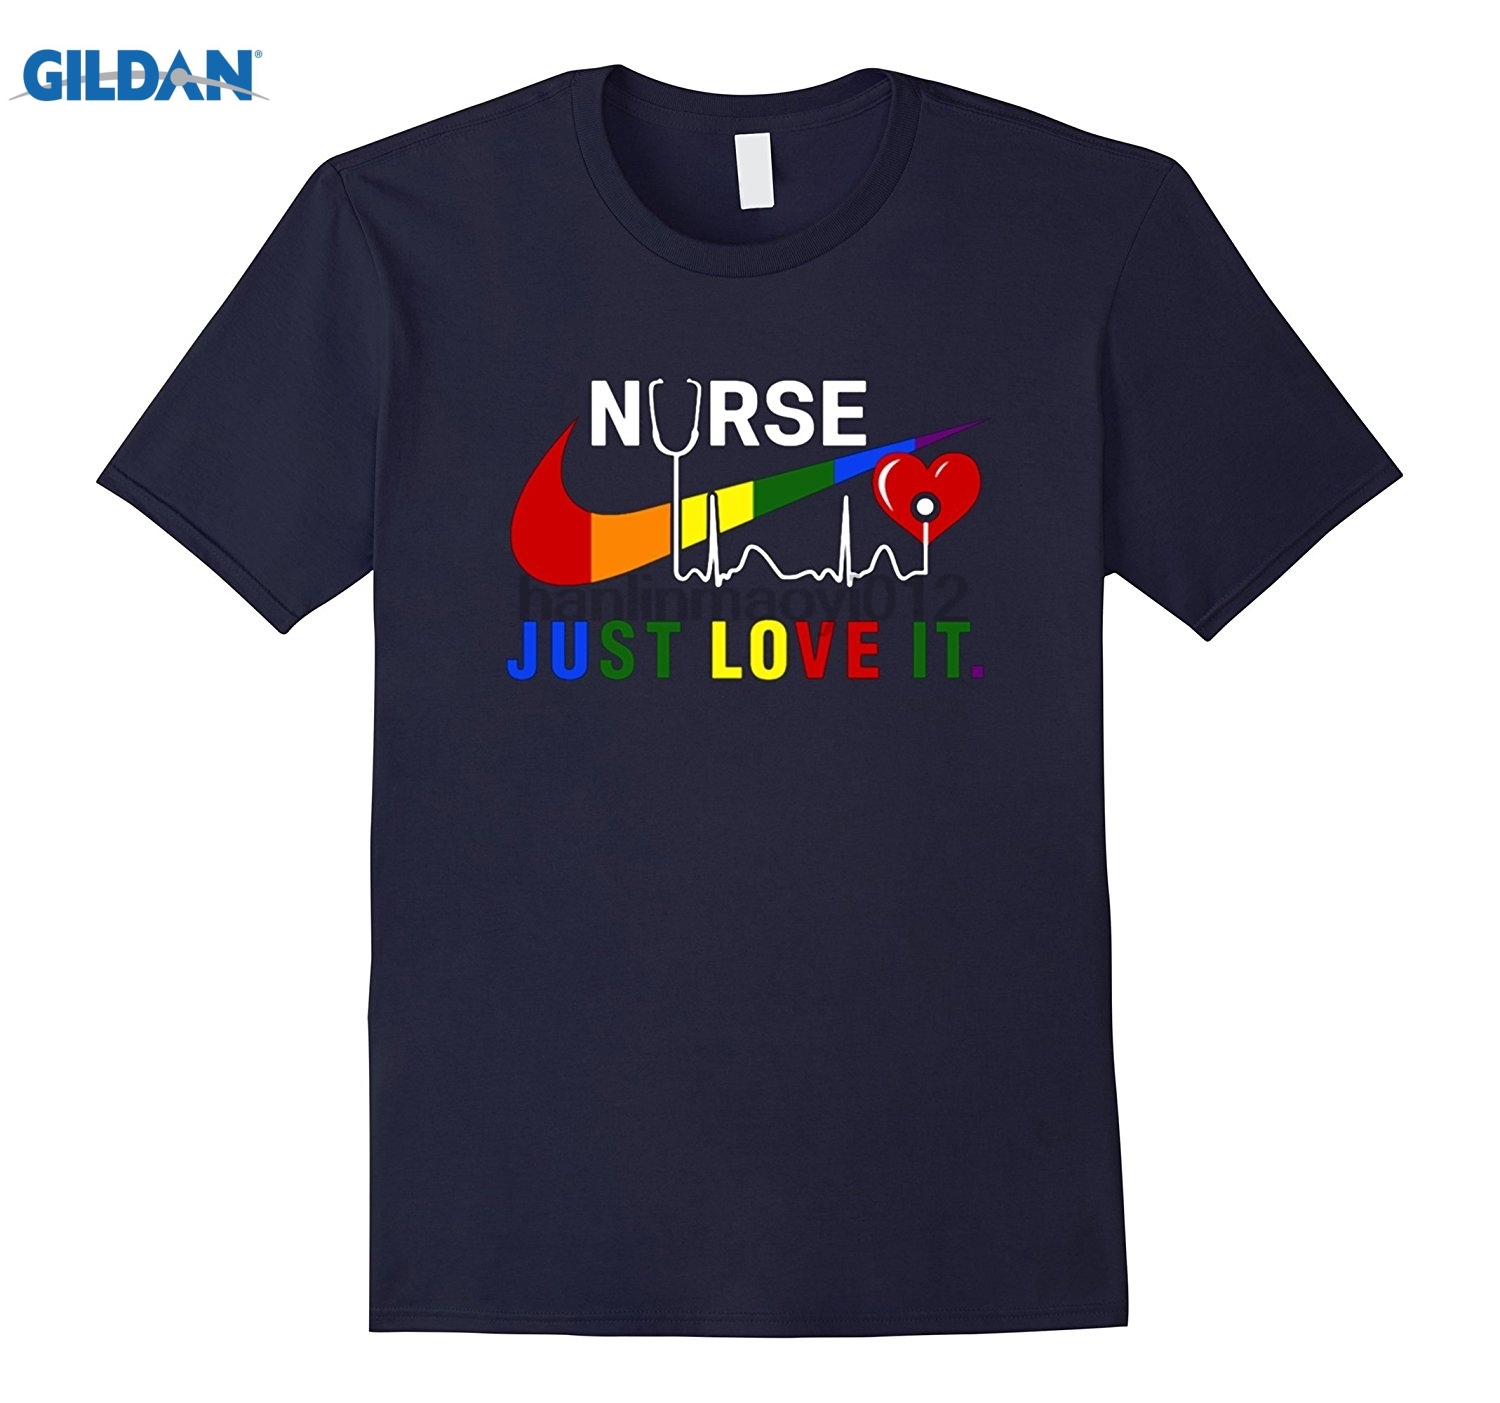 GILDAN Just Love It Funny Nurse T-shirt sunglasses women T-shirt Hot Womens T-shirt dres ...